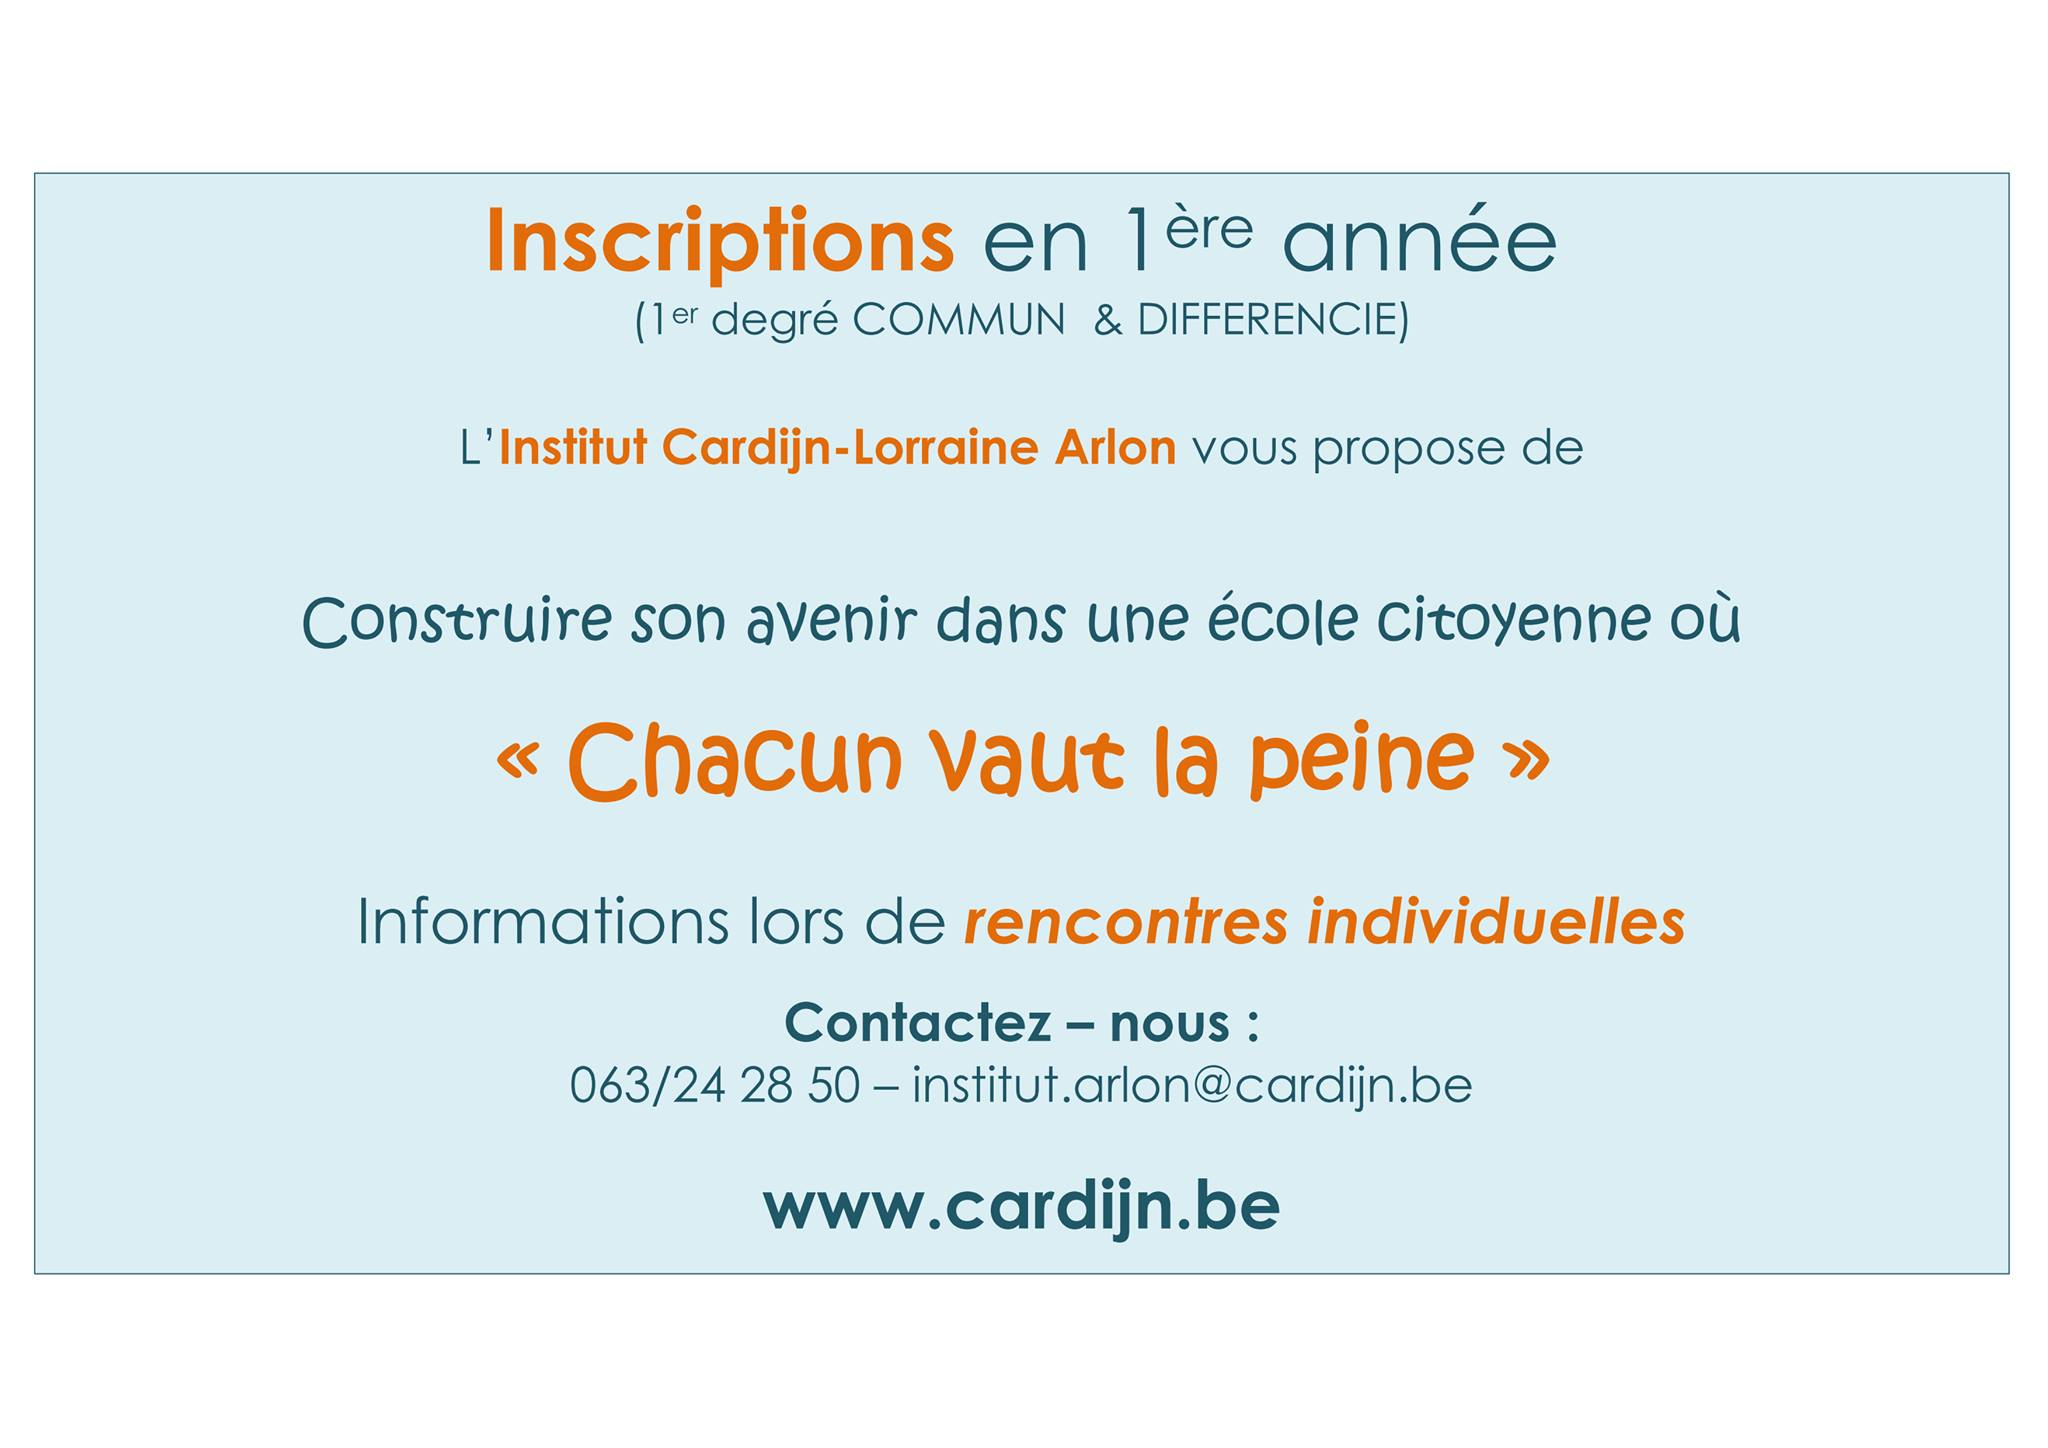 inscriptions 1ere